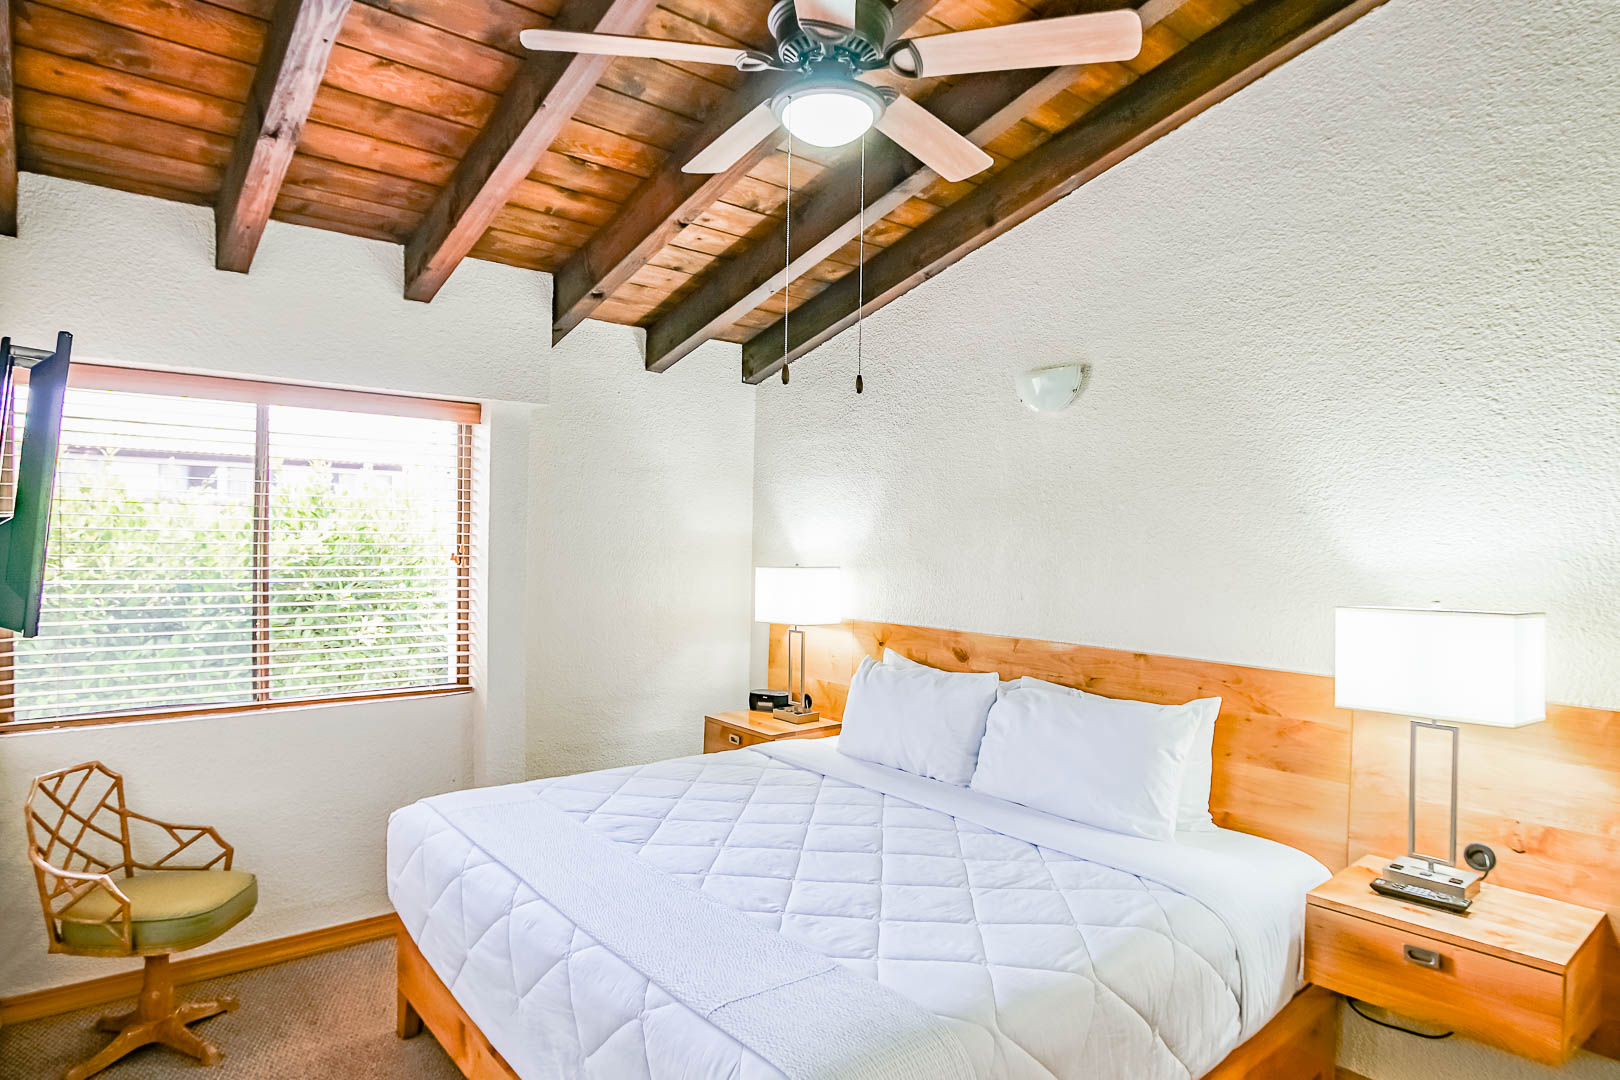 A spacious bedroom at VRI's La Paloma in Rosarito, Mexico.